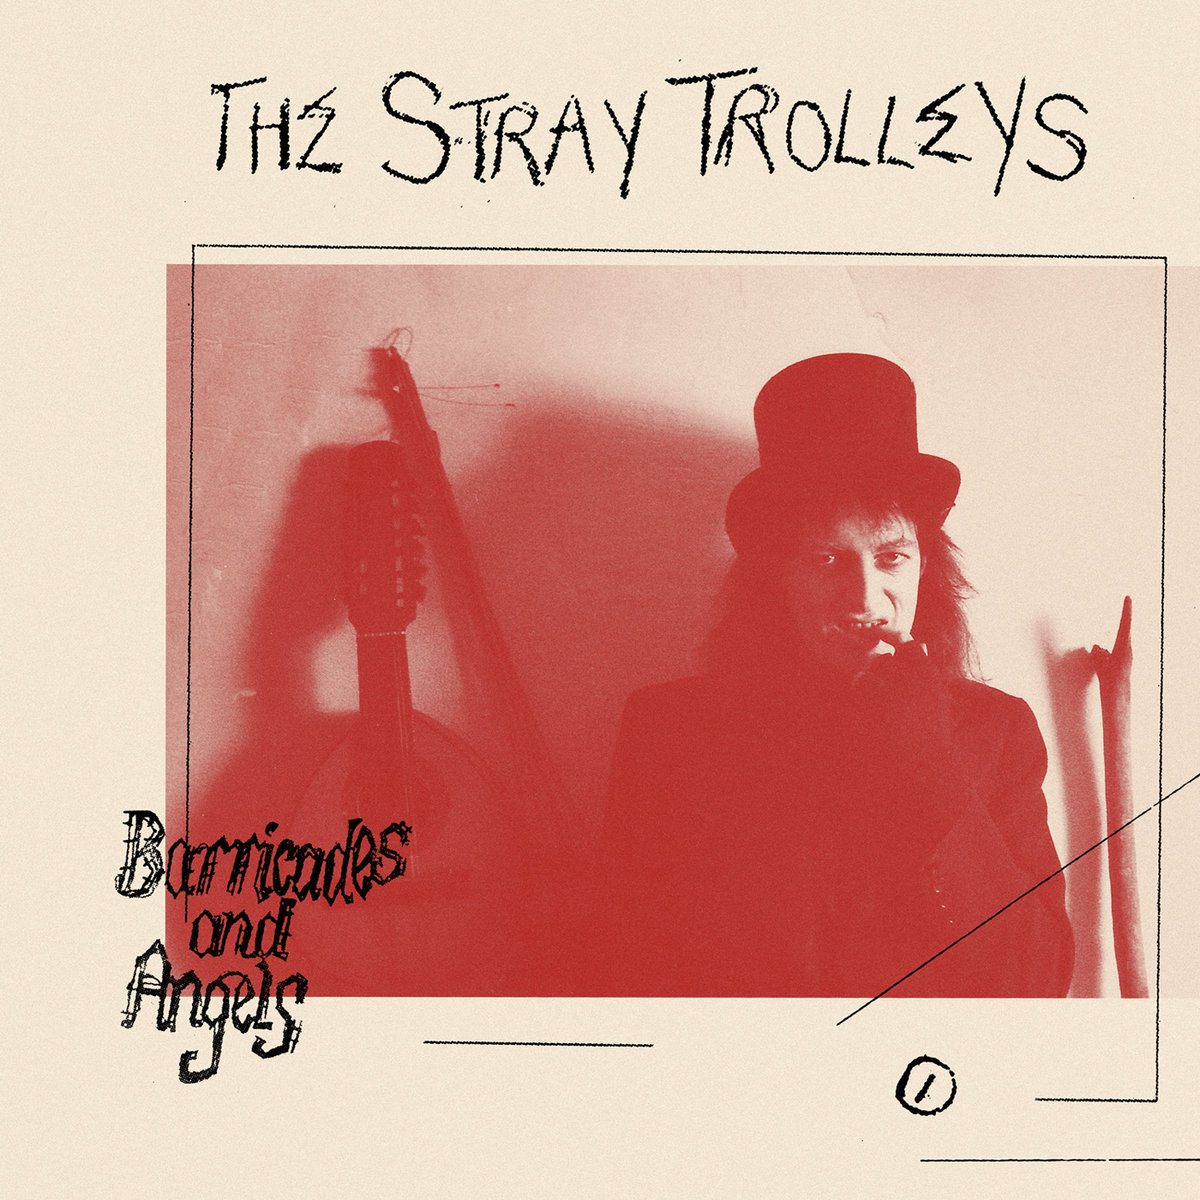 STRAY TROLLEYS, THE